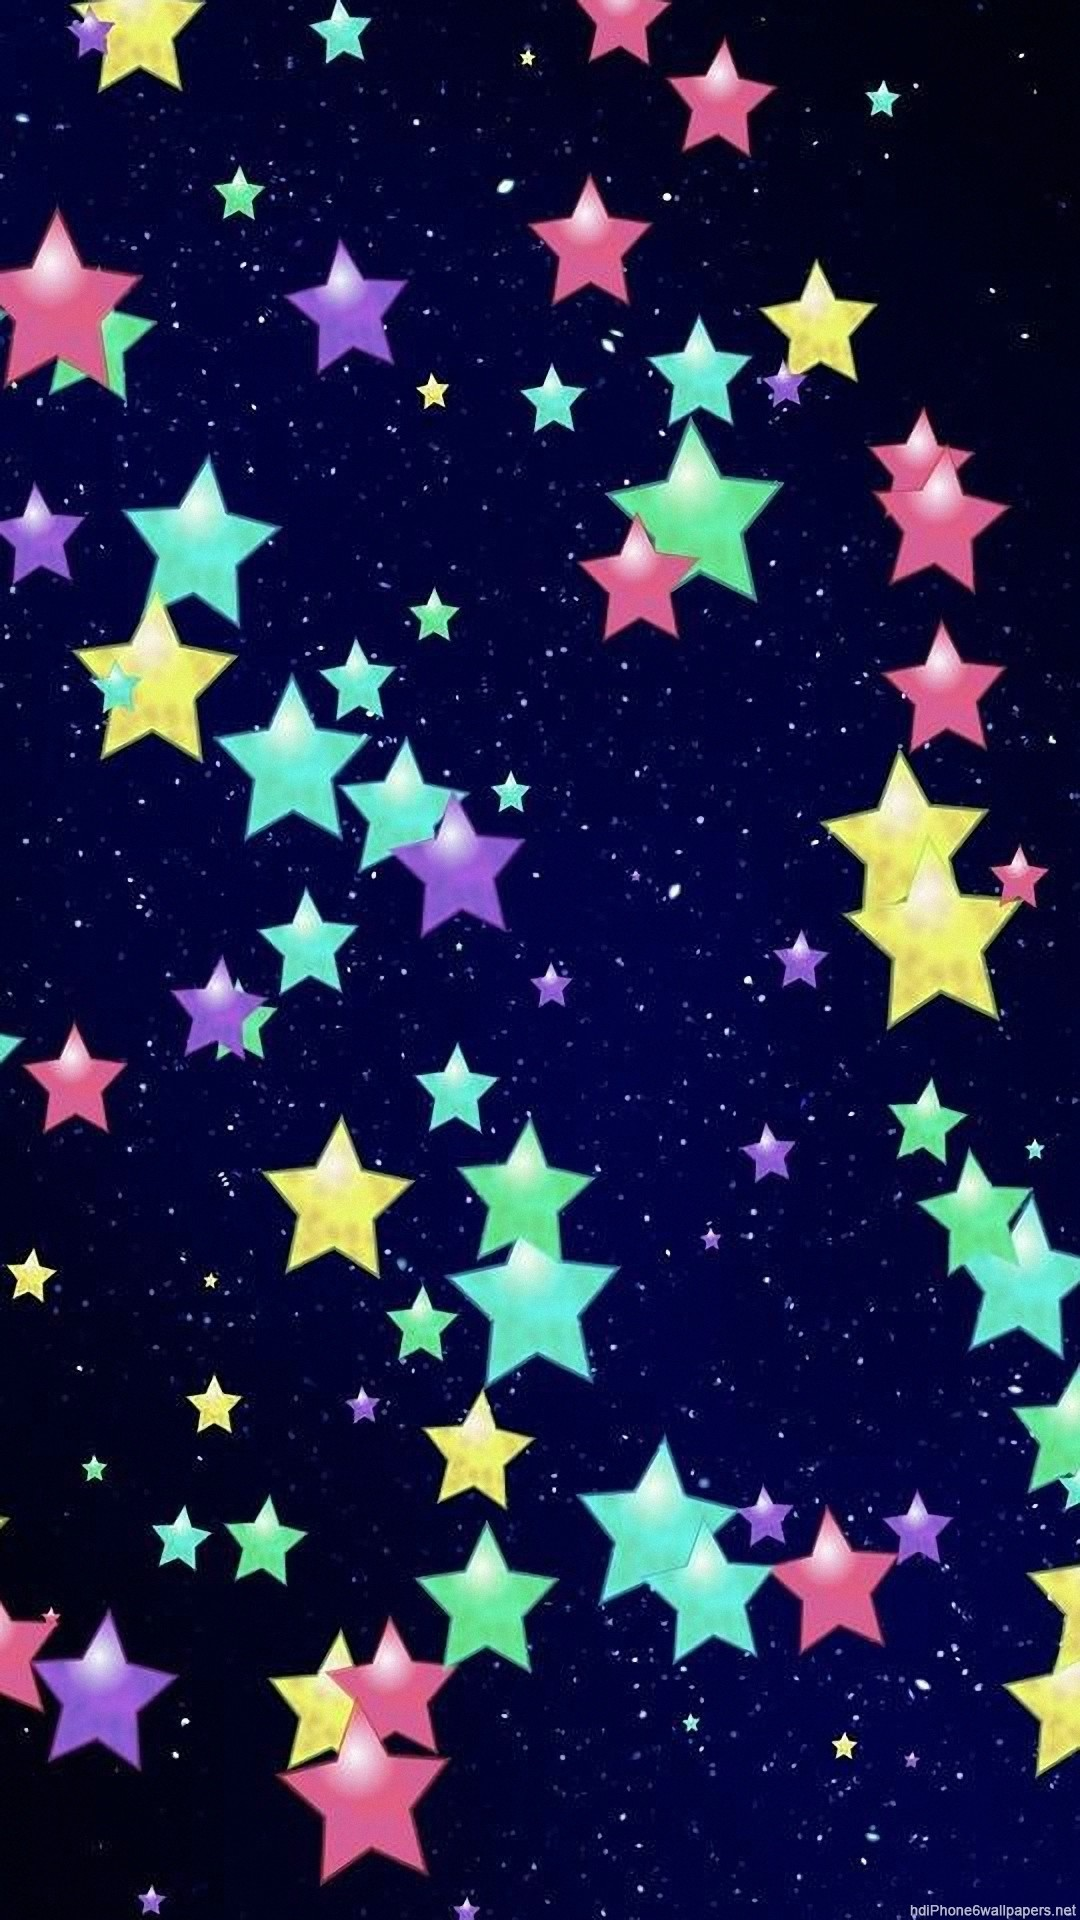 1080x1920, Colorful Star Light Iphone 6 Wallpapers - Iphone Backgrounds Colorful Stars - HD Wallpaper